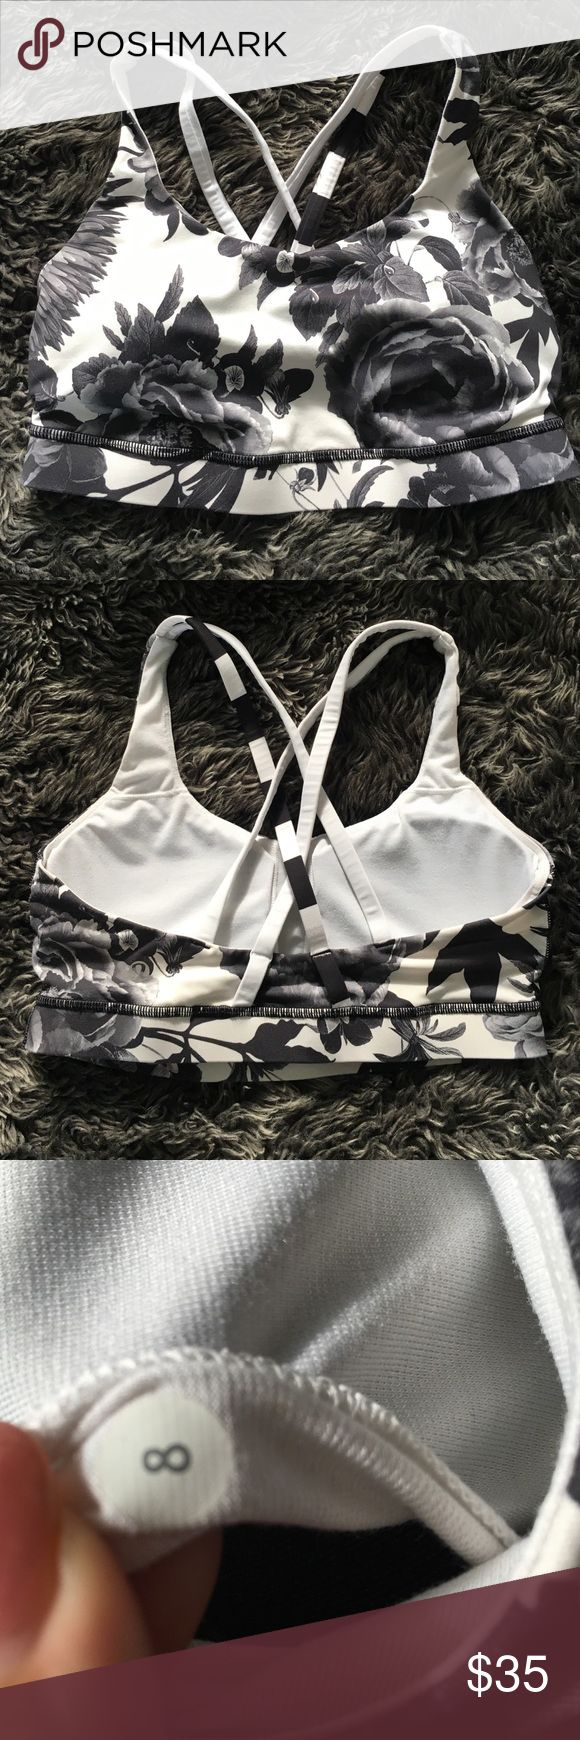 Lululemon energy sports bra Worn only once, black and white floral patterned sports bra. lululemon athletica Other